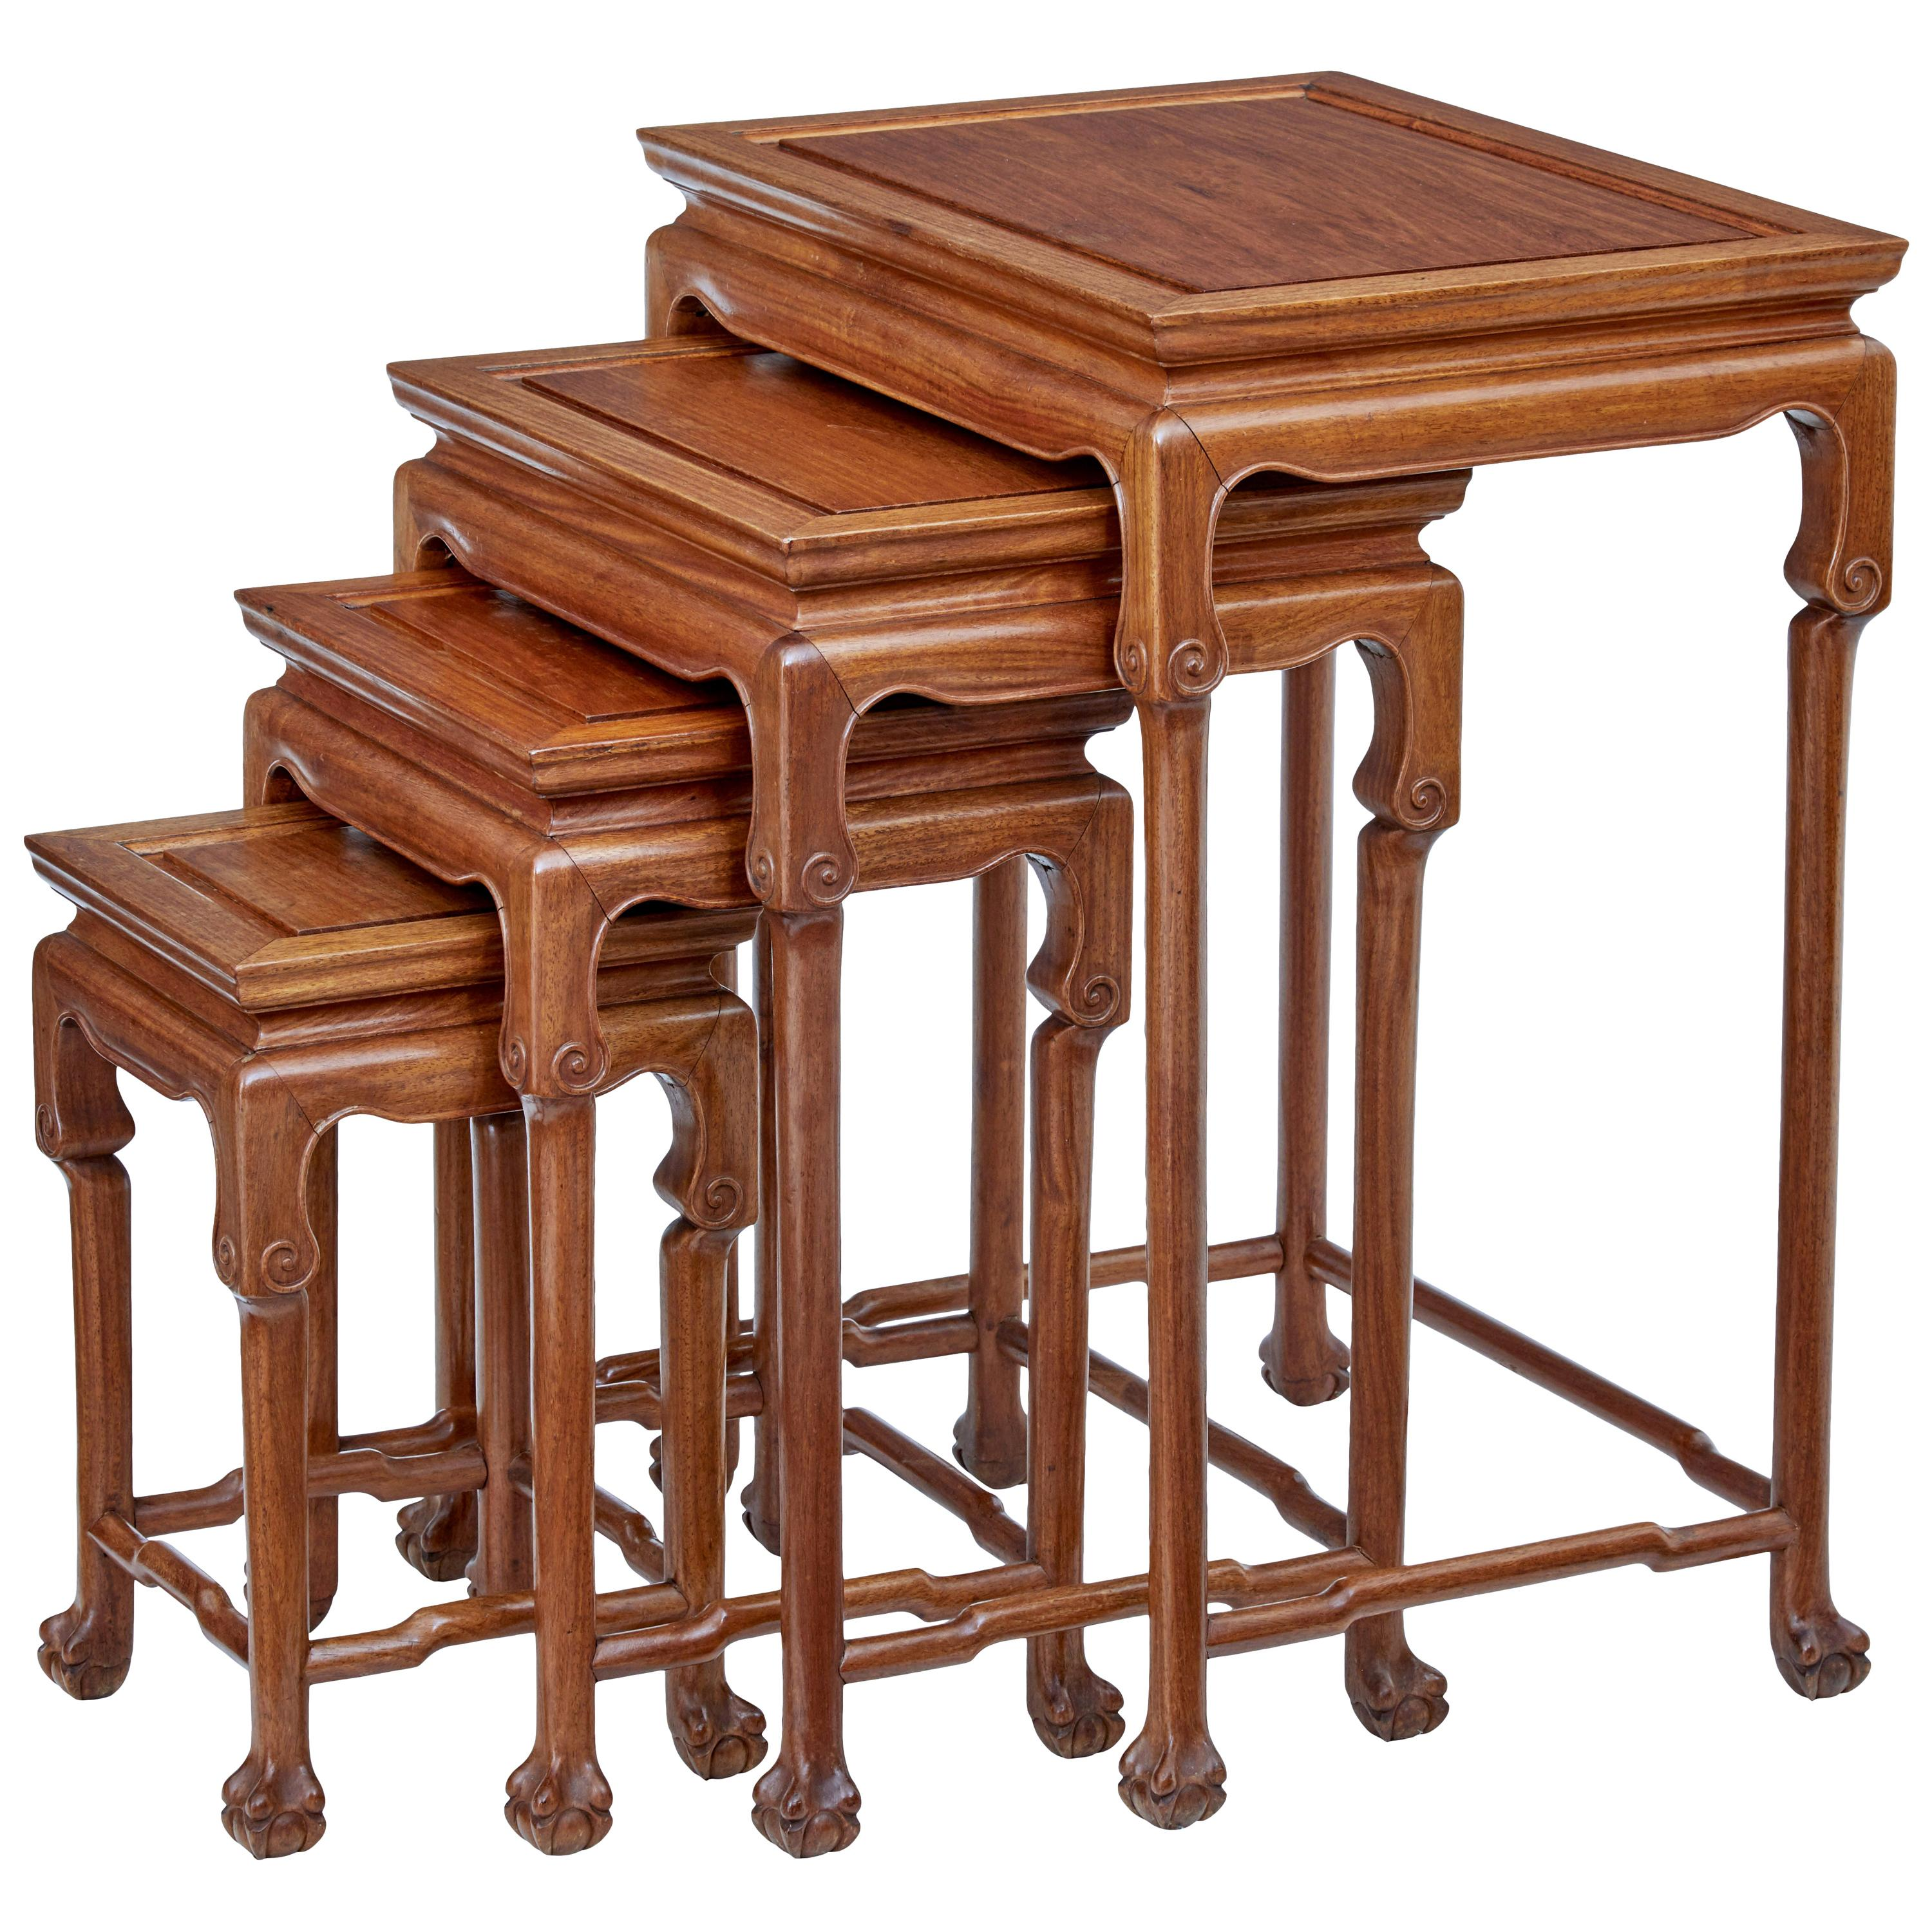 Exceptionnel Chinese Nesting Tables And Stacking Tables   38 For Sale At ...